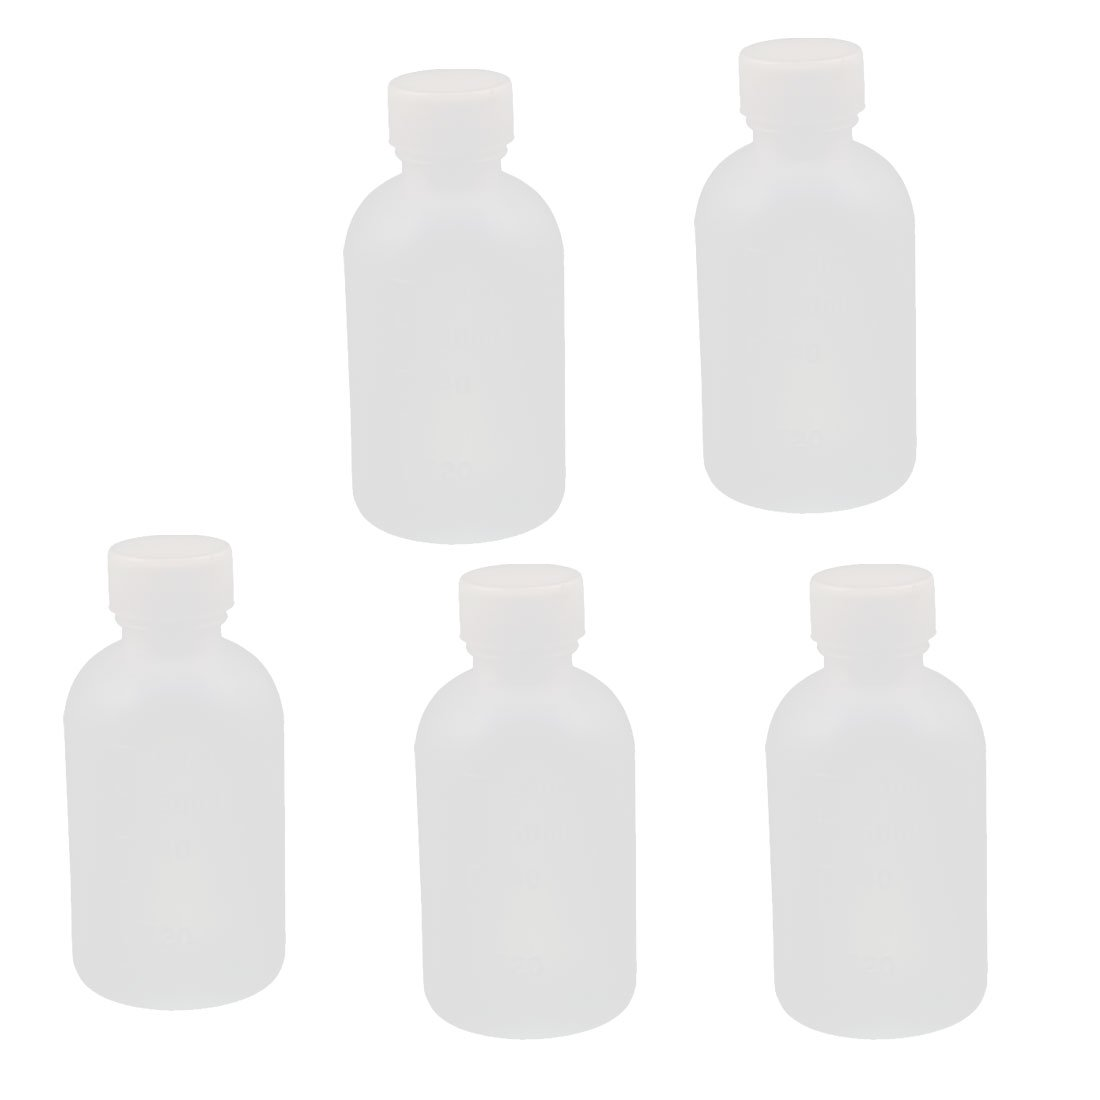 sourcingmap 5Pcs 60ml Plastic Round Laboratory Reagent Bottle Sample Sealing Bottle Clear a16082700ux0307